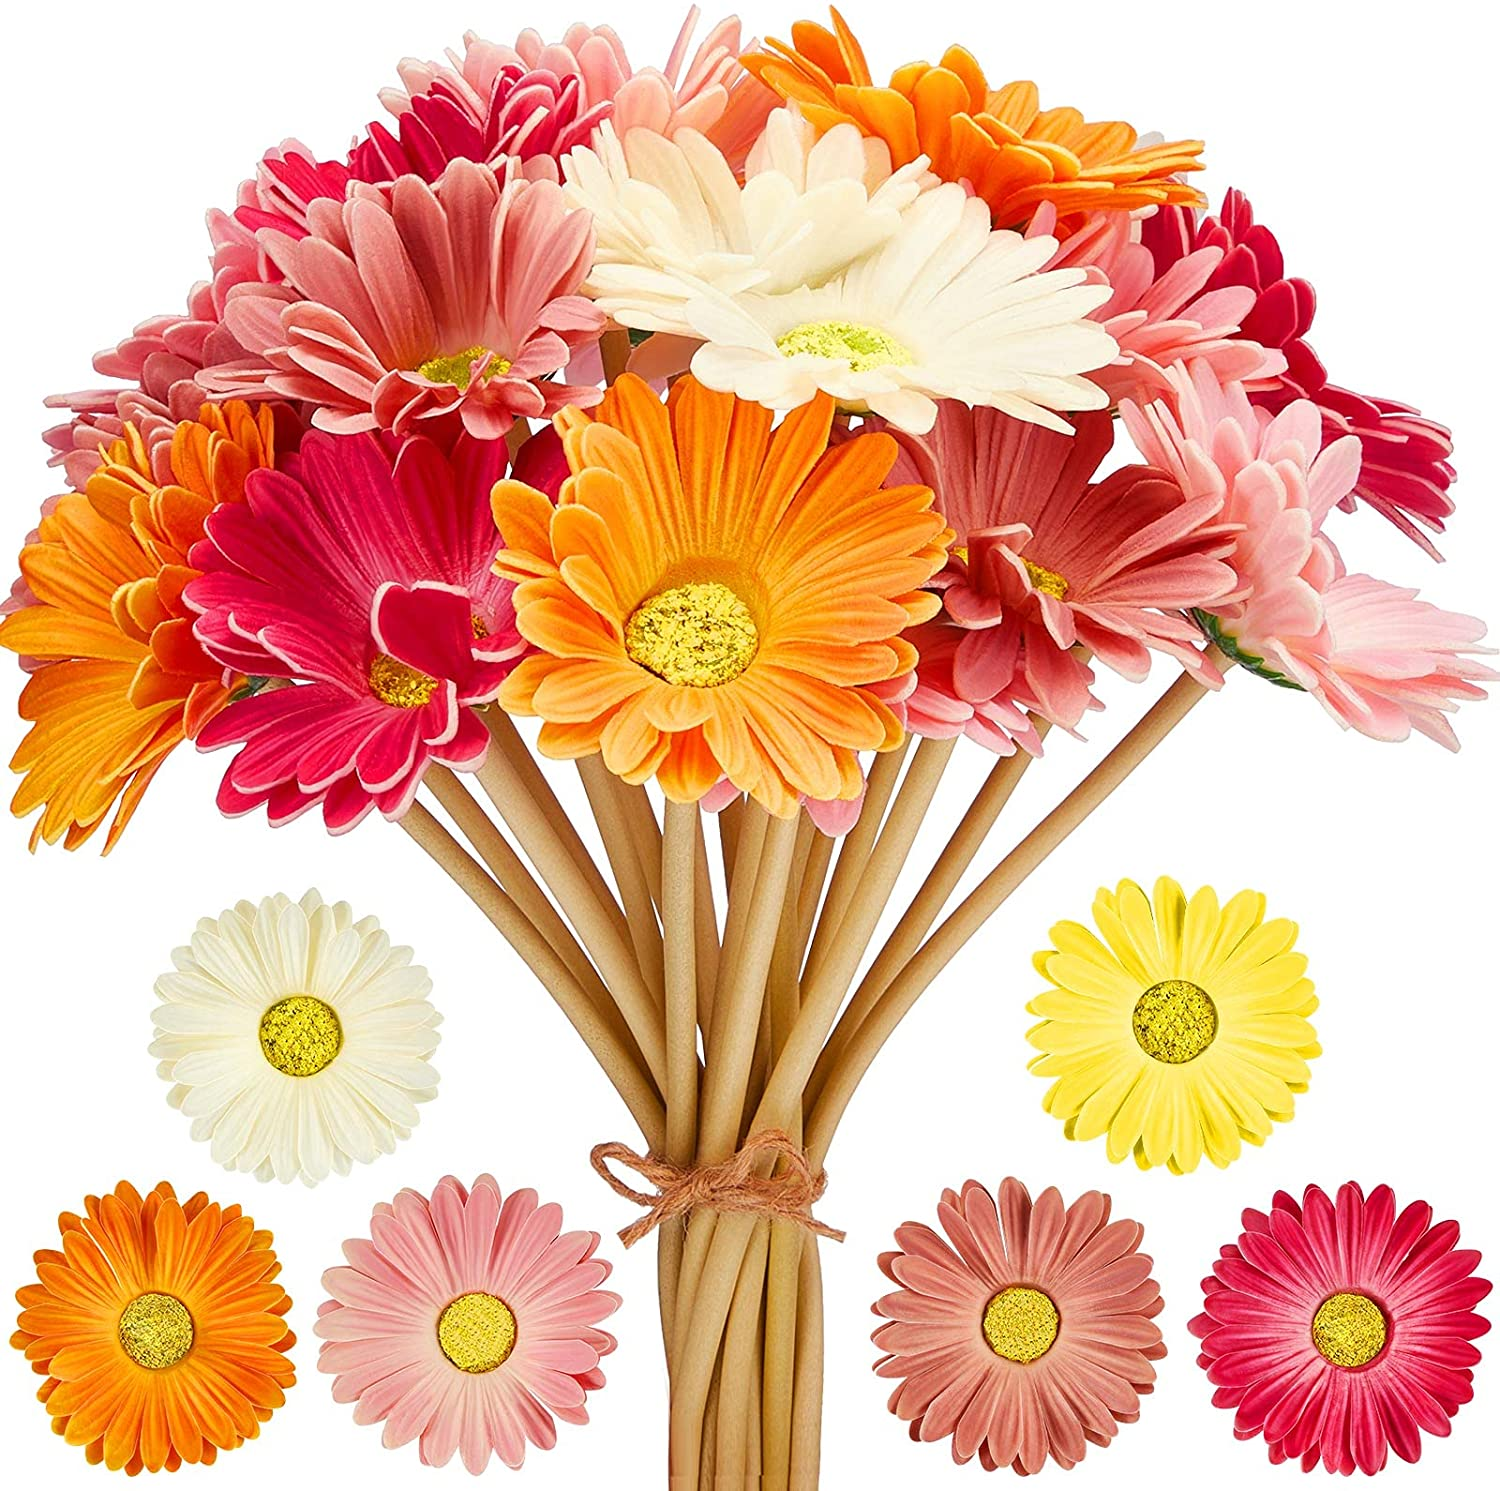 Latest item Artificial Daisy Flowers Fake Gerbera Online limited product D